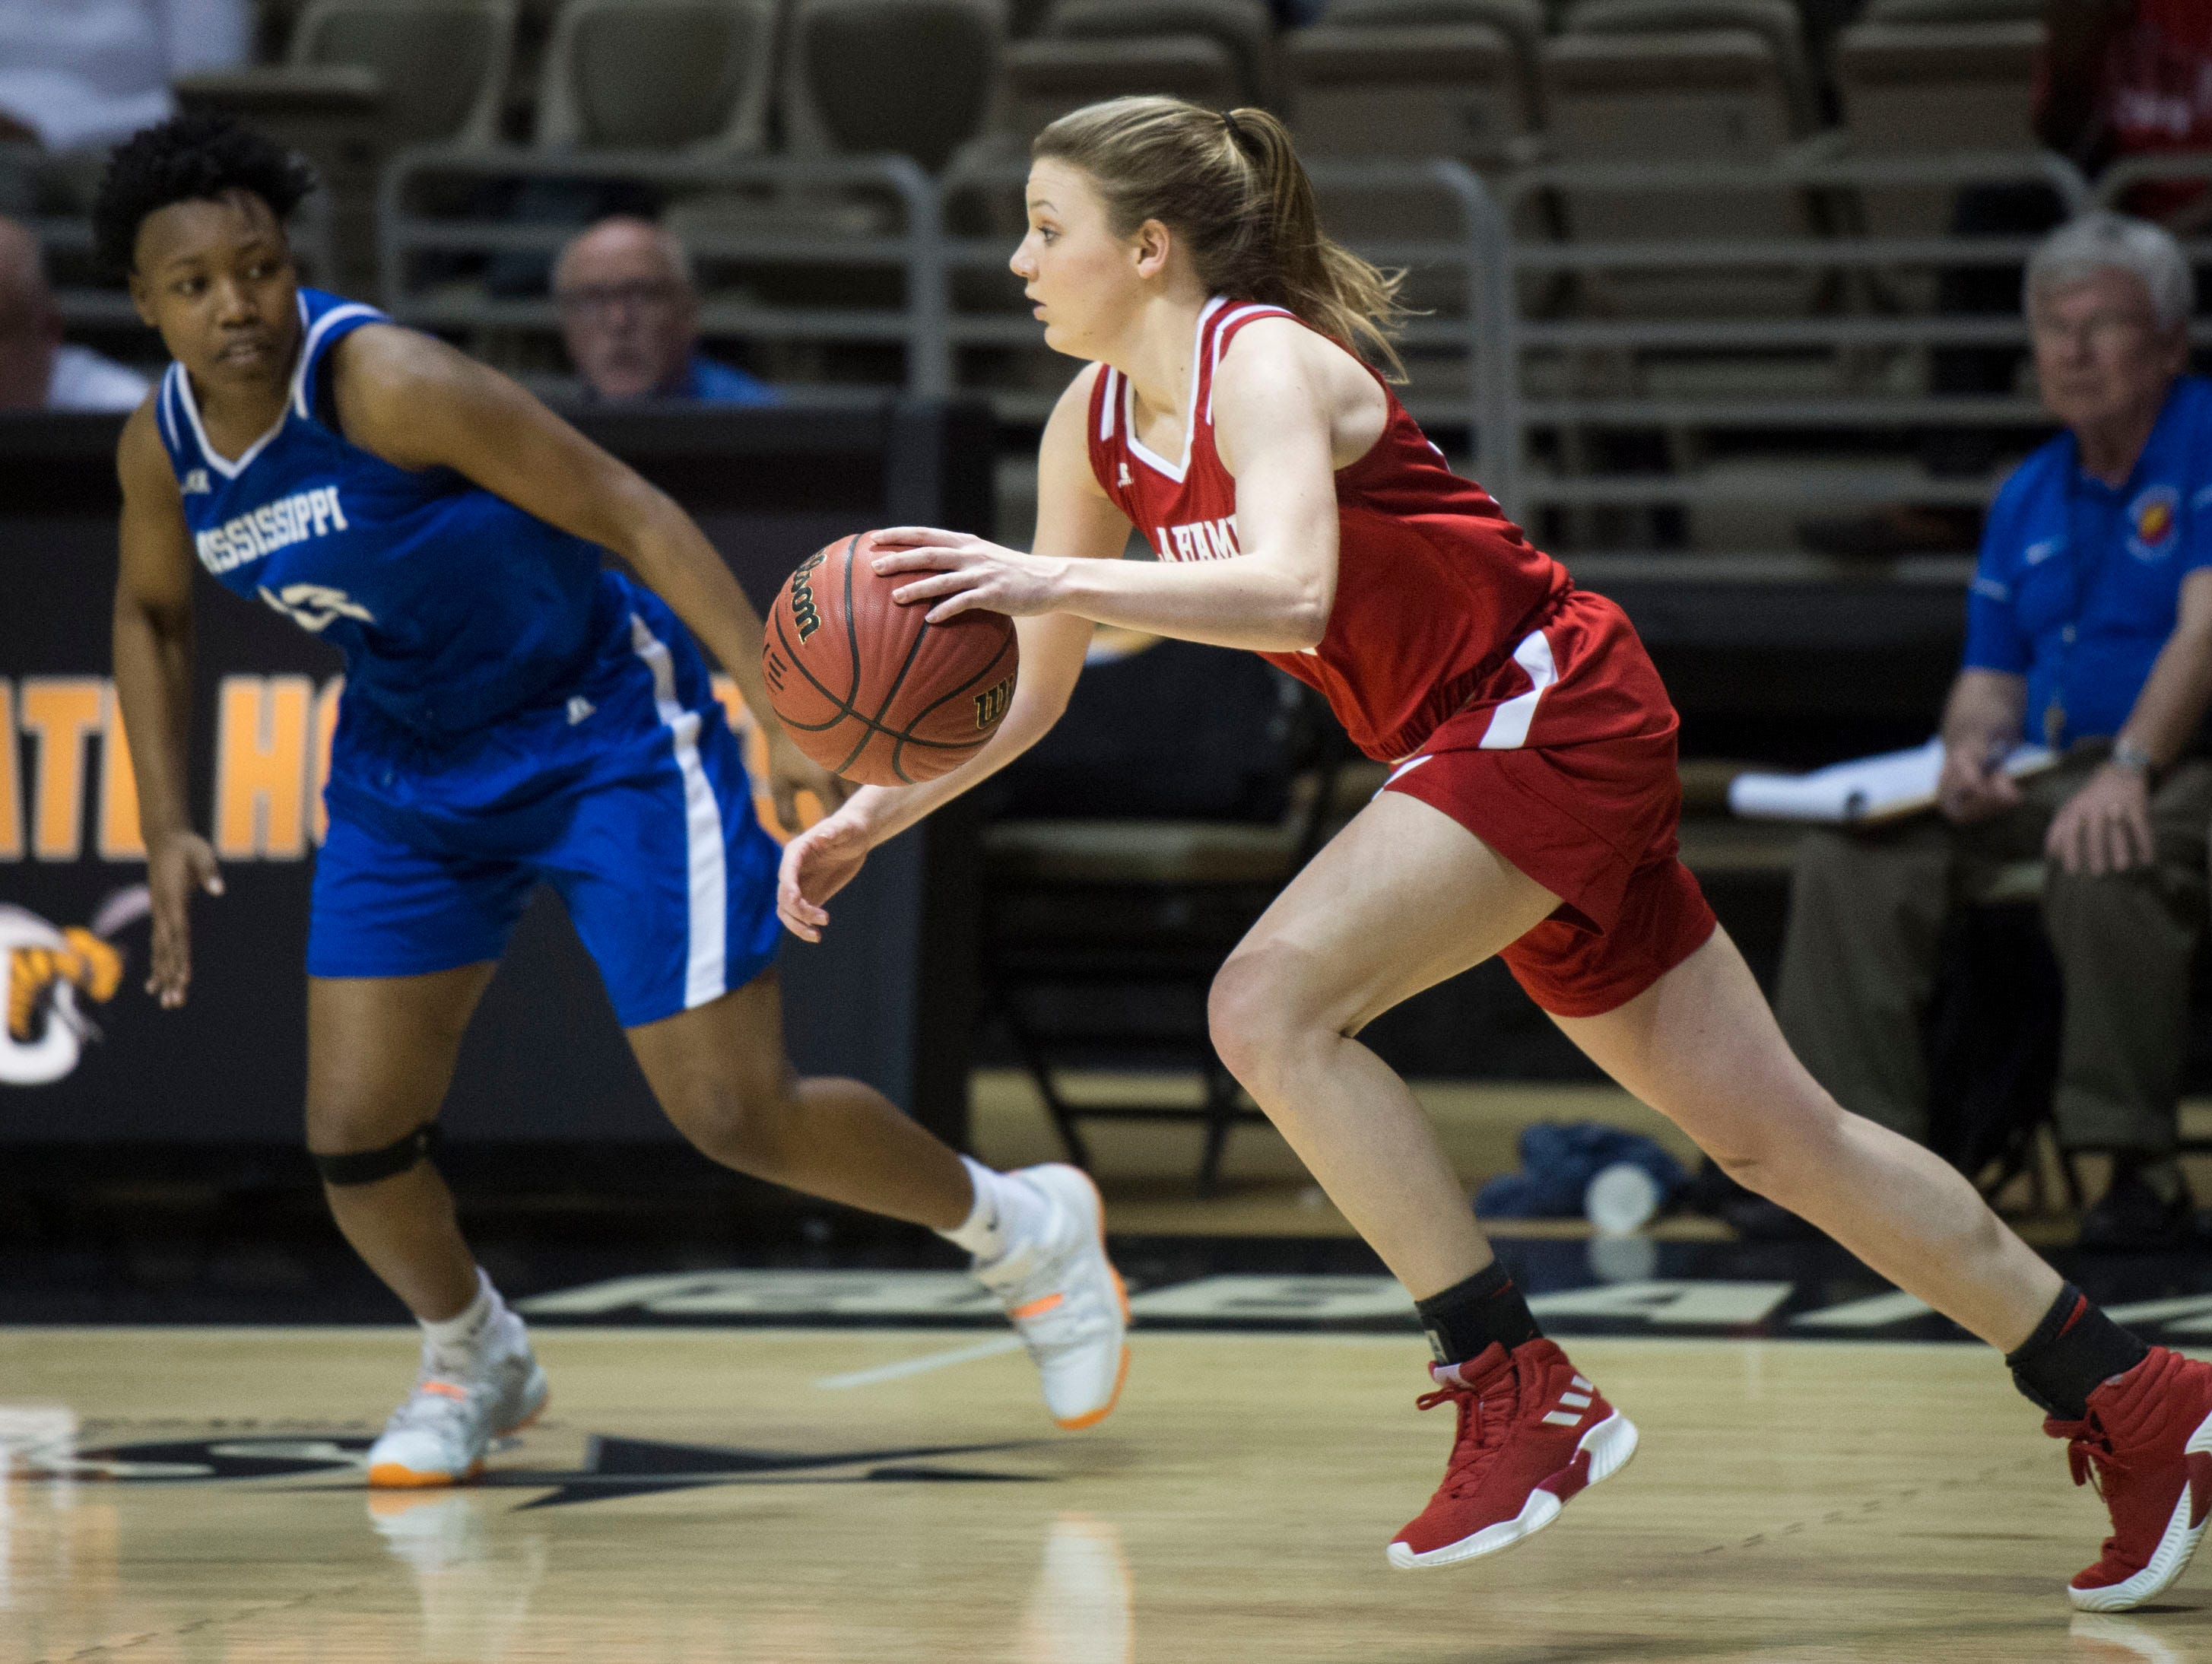 Alabama's Annie Hughes (10) drives the ball up the court during the Alabama-Mississippi All-Star game at the Dunn-Oliver Acadome in Montgomery, Ala., on Friday, March 15, 2019. Alabama All-stars defeated the Mississippi All-stars 101-82.